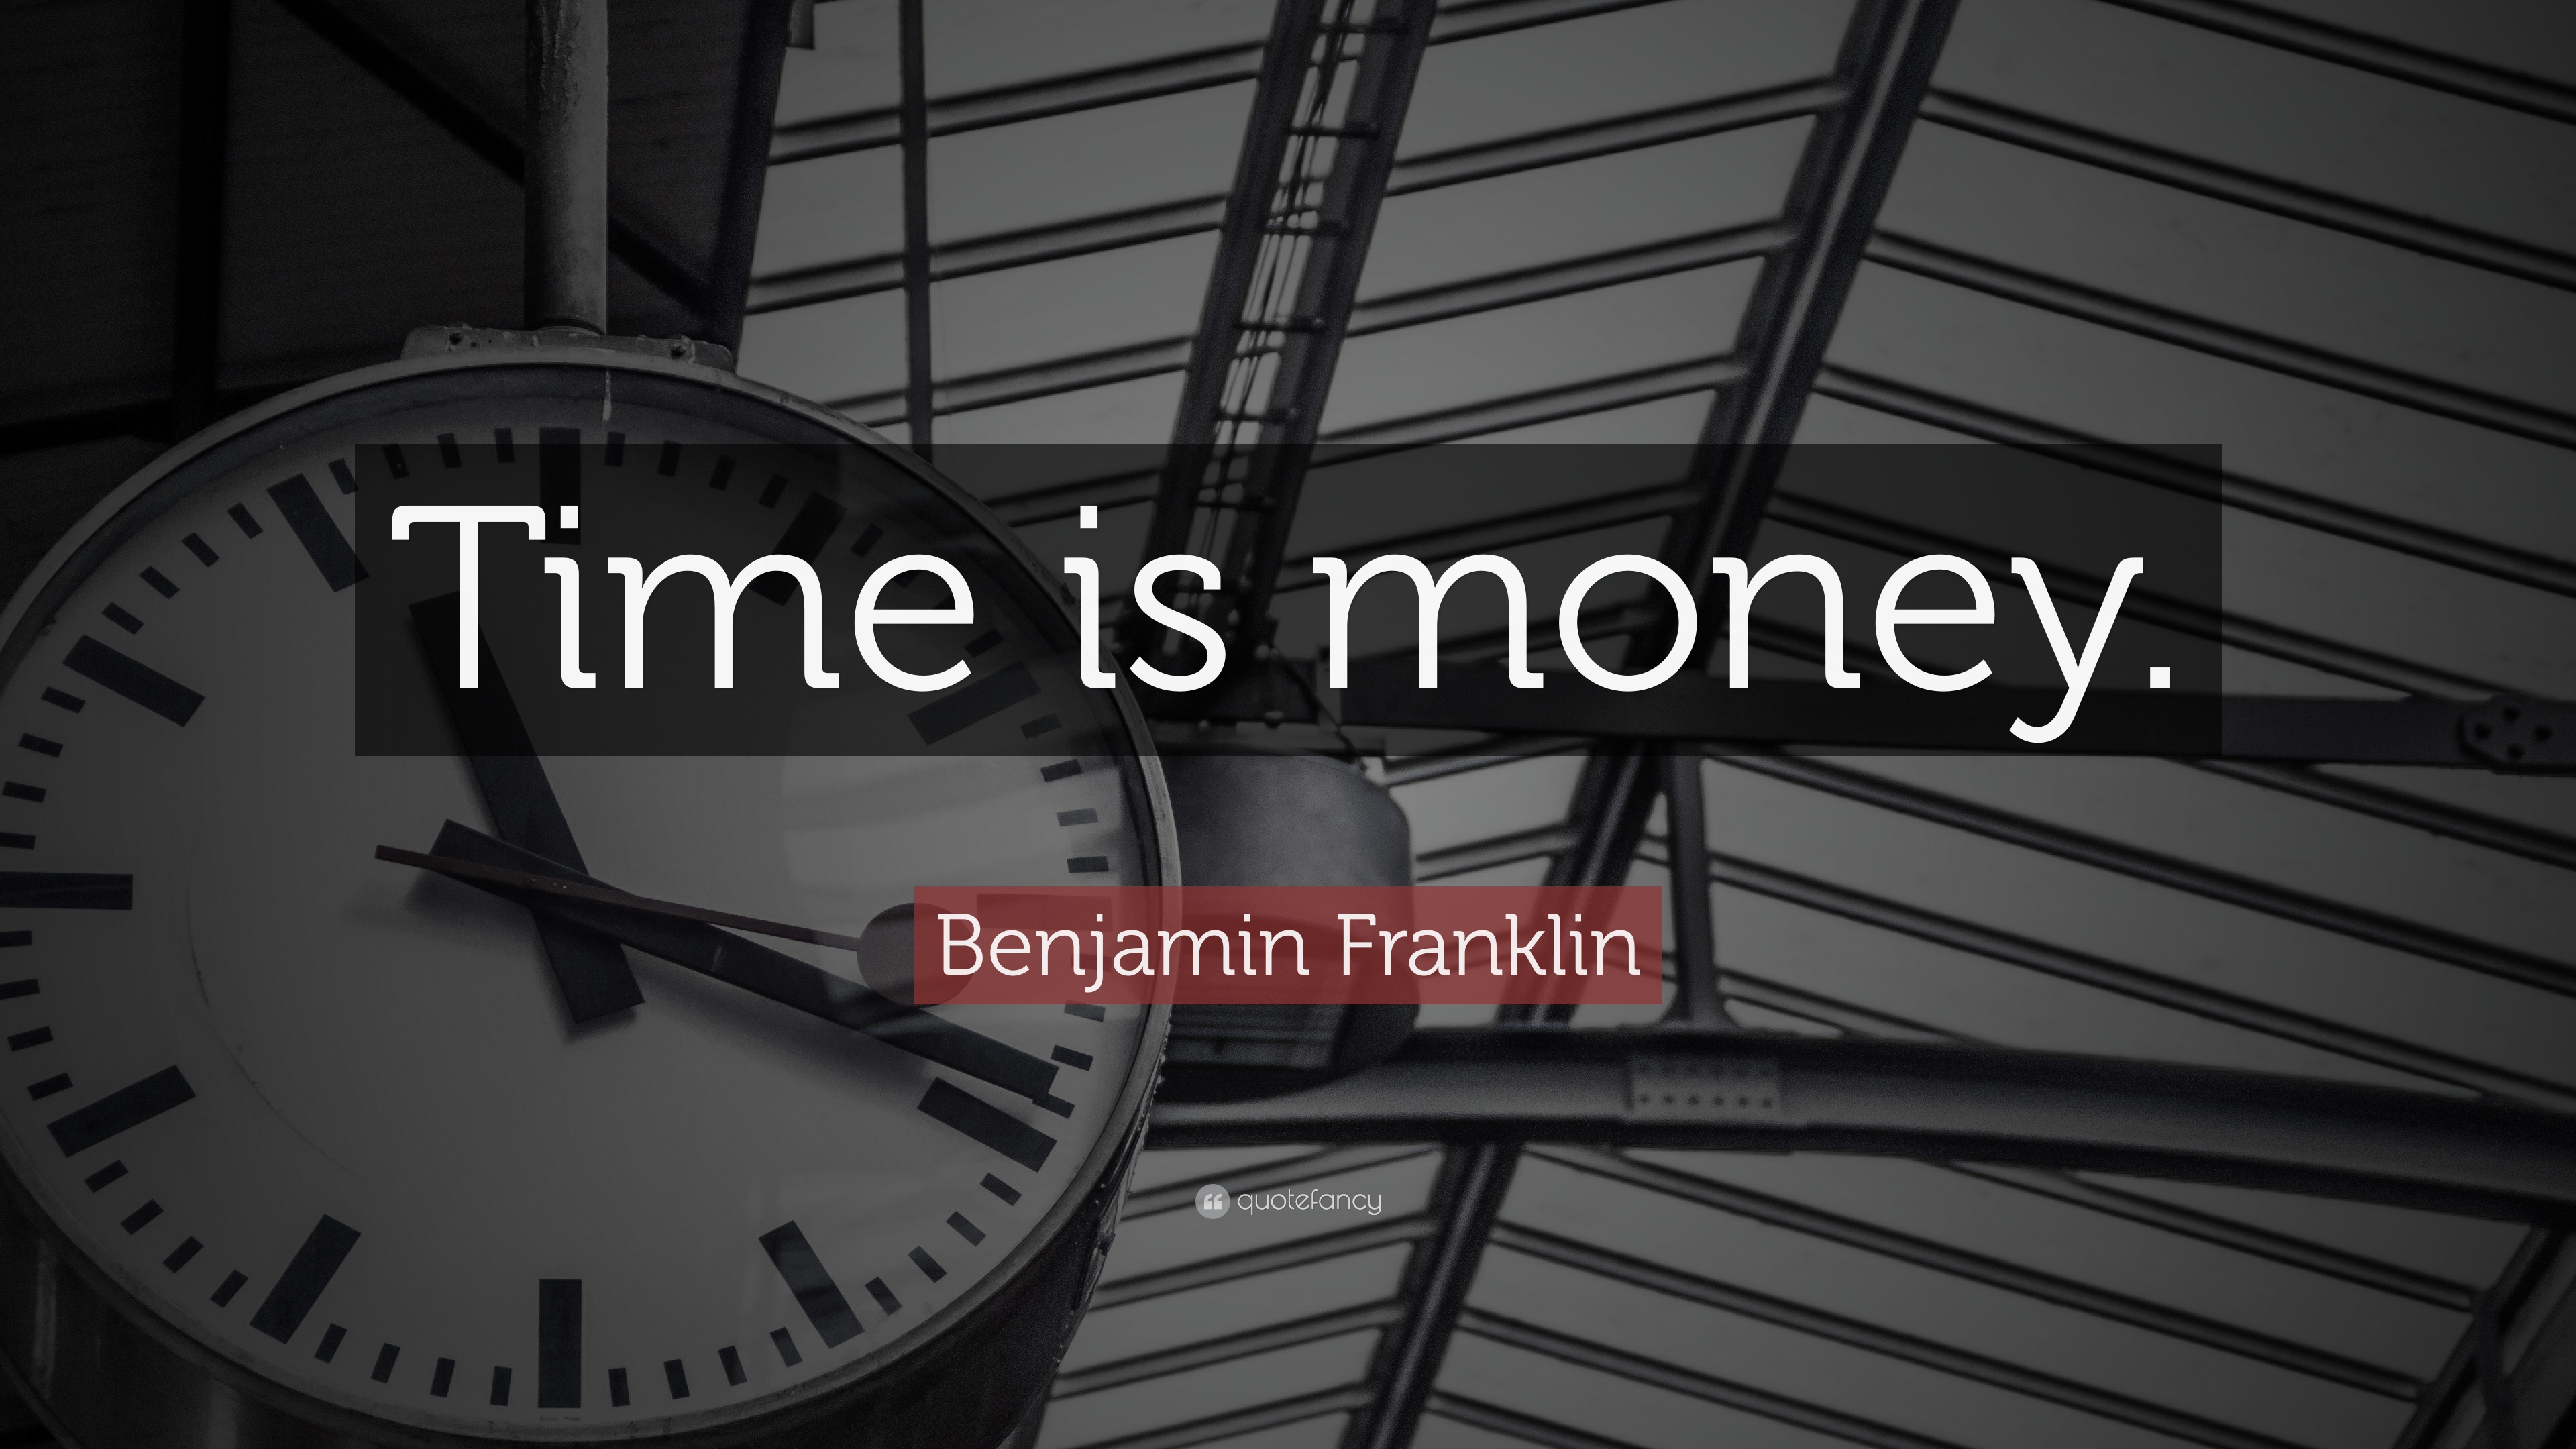 Time Quotes: U201cTime Is Money.u201d U2014 Benjamin Franklin